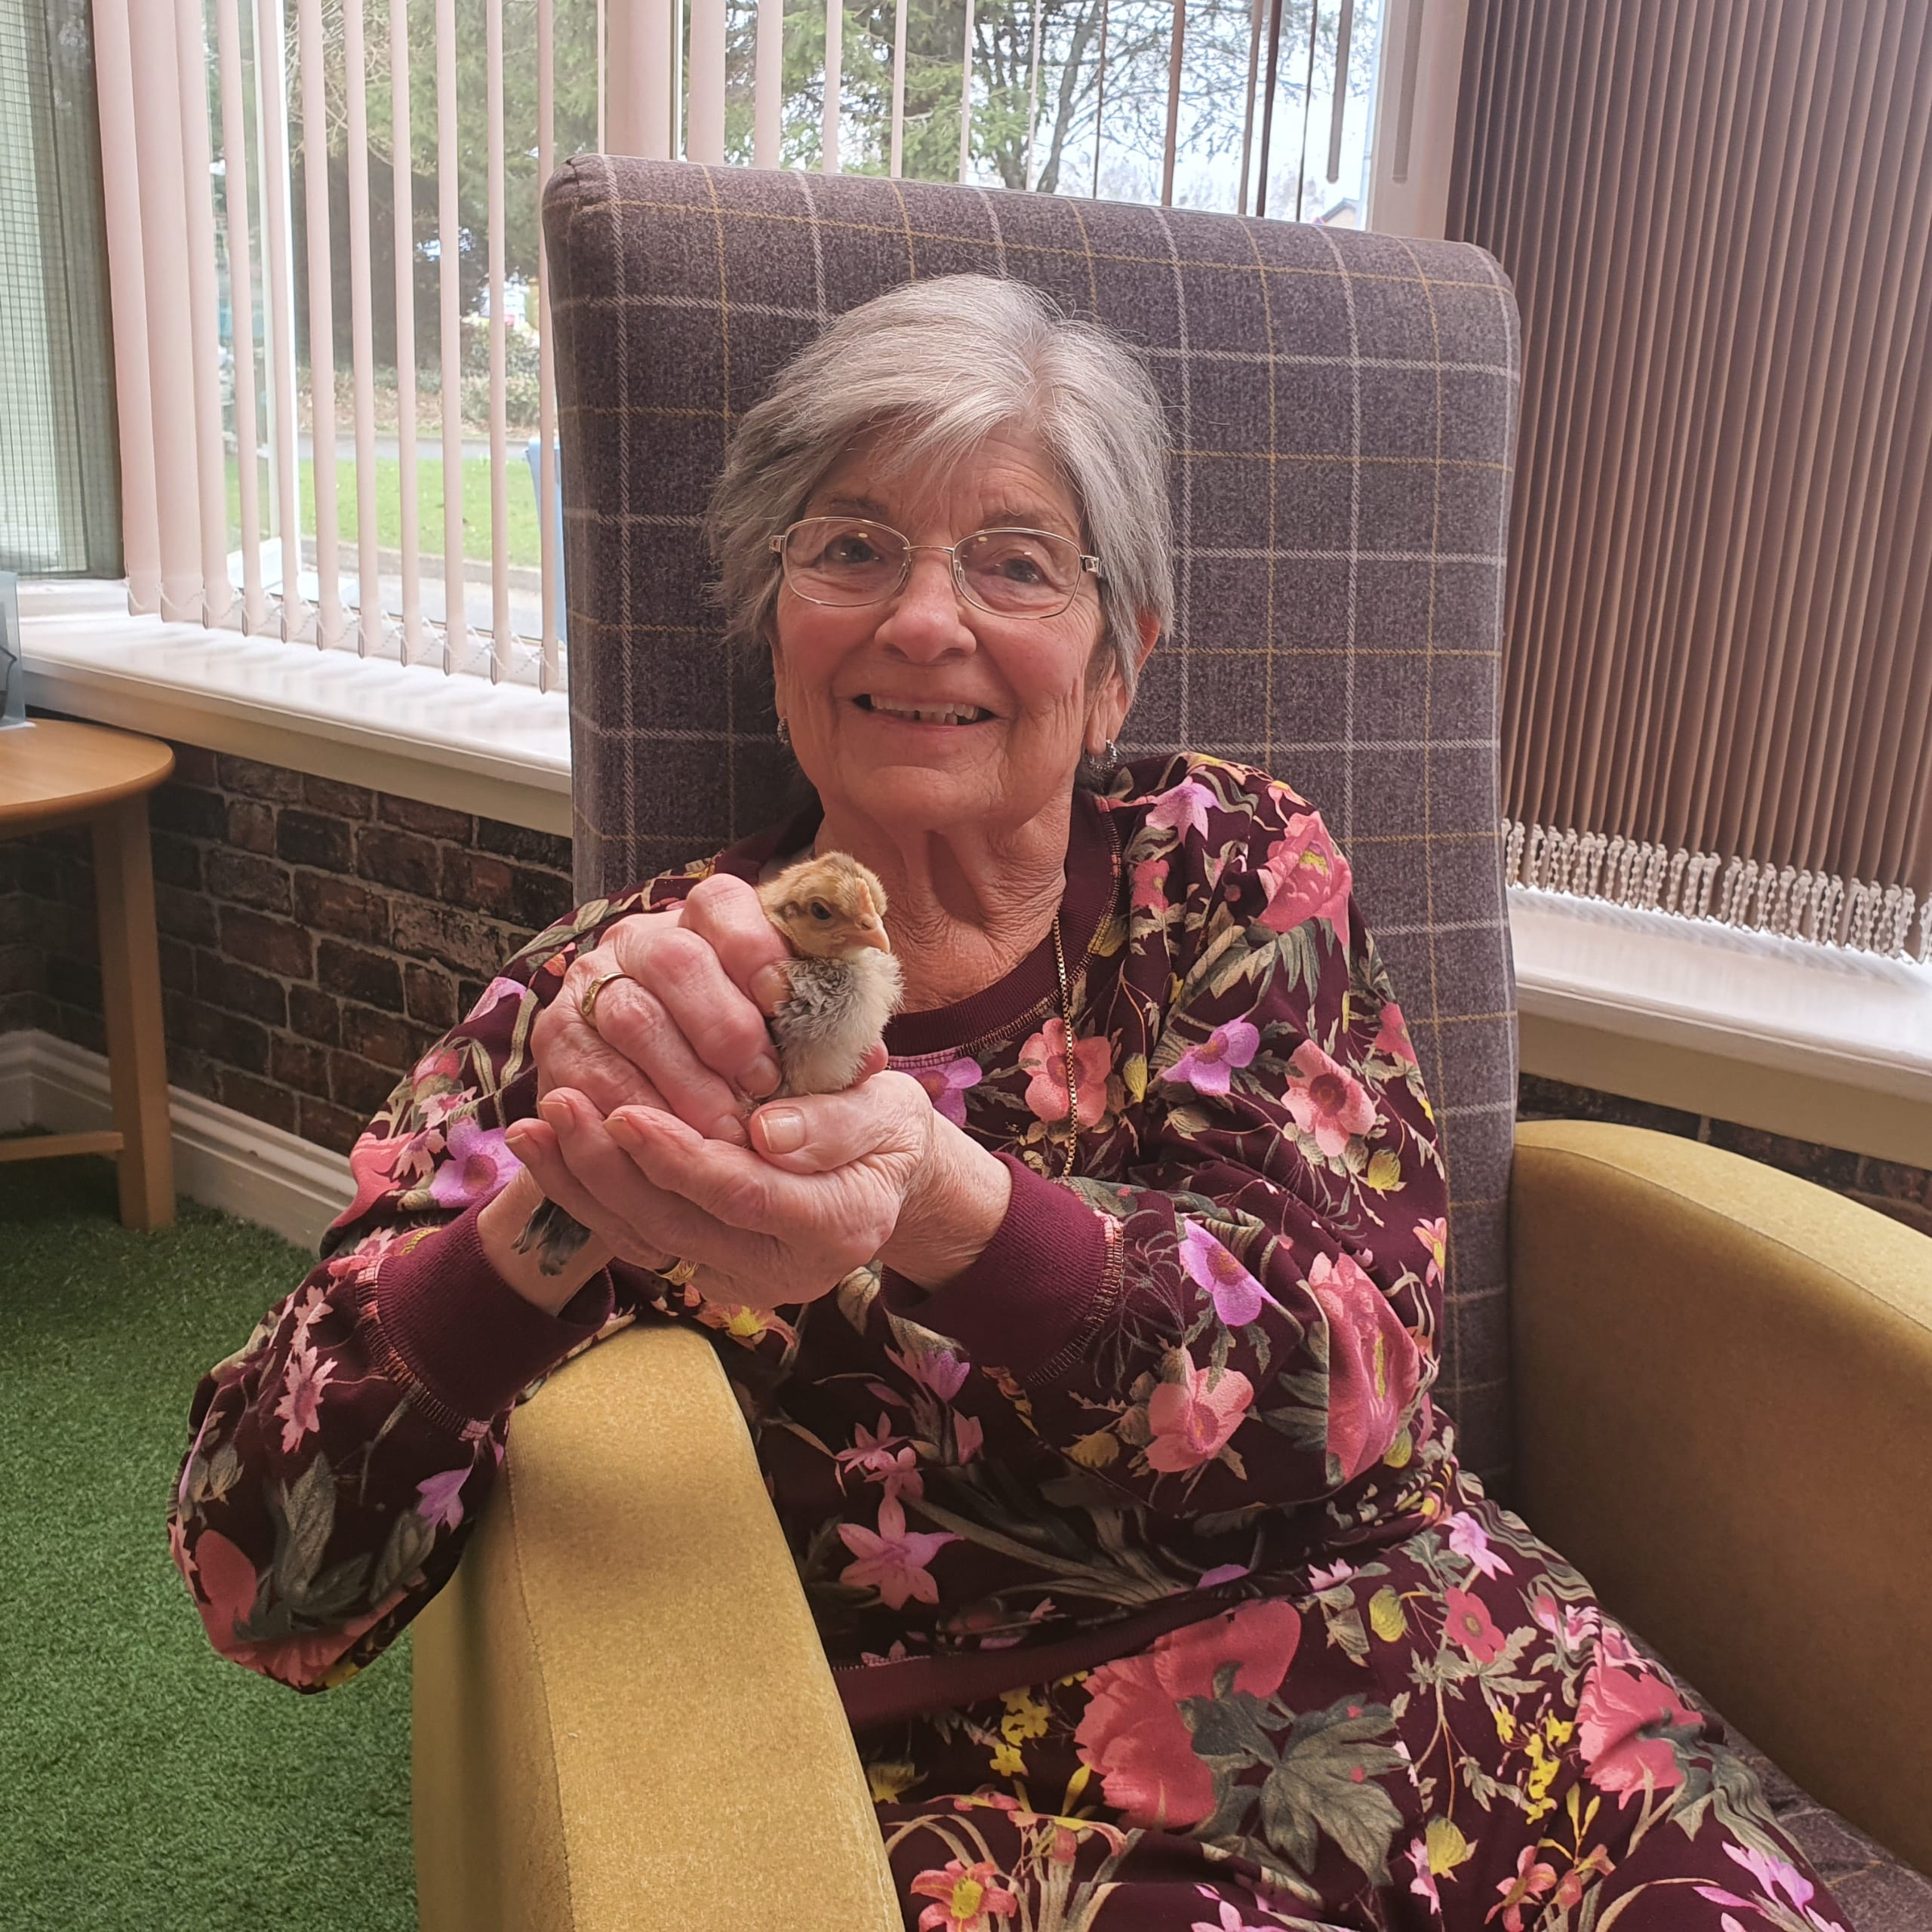 Shonda McMillan, resident of Avonbridge Care Home in Hamilton with one of the home's fluffy new chicks.